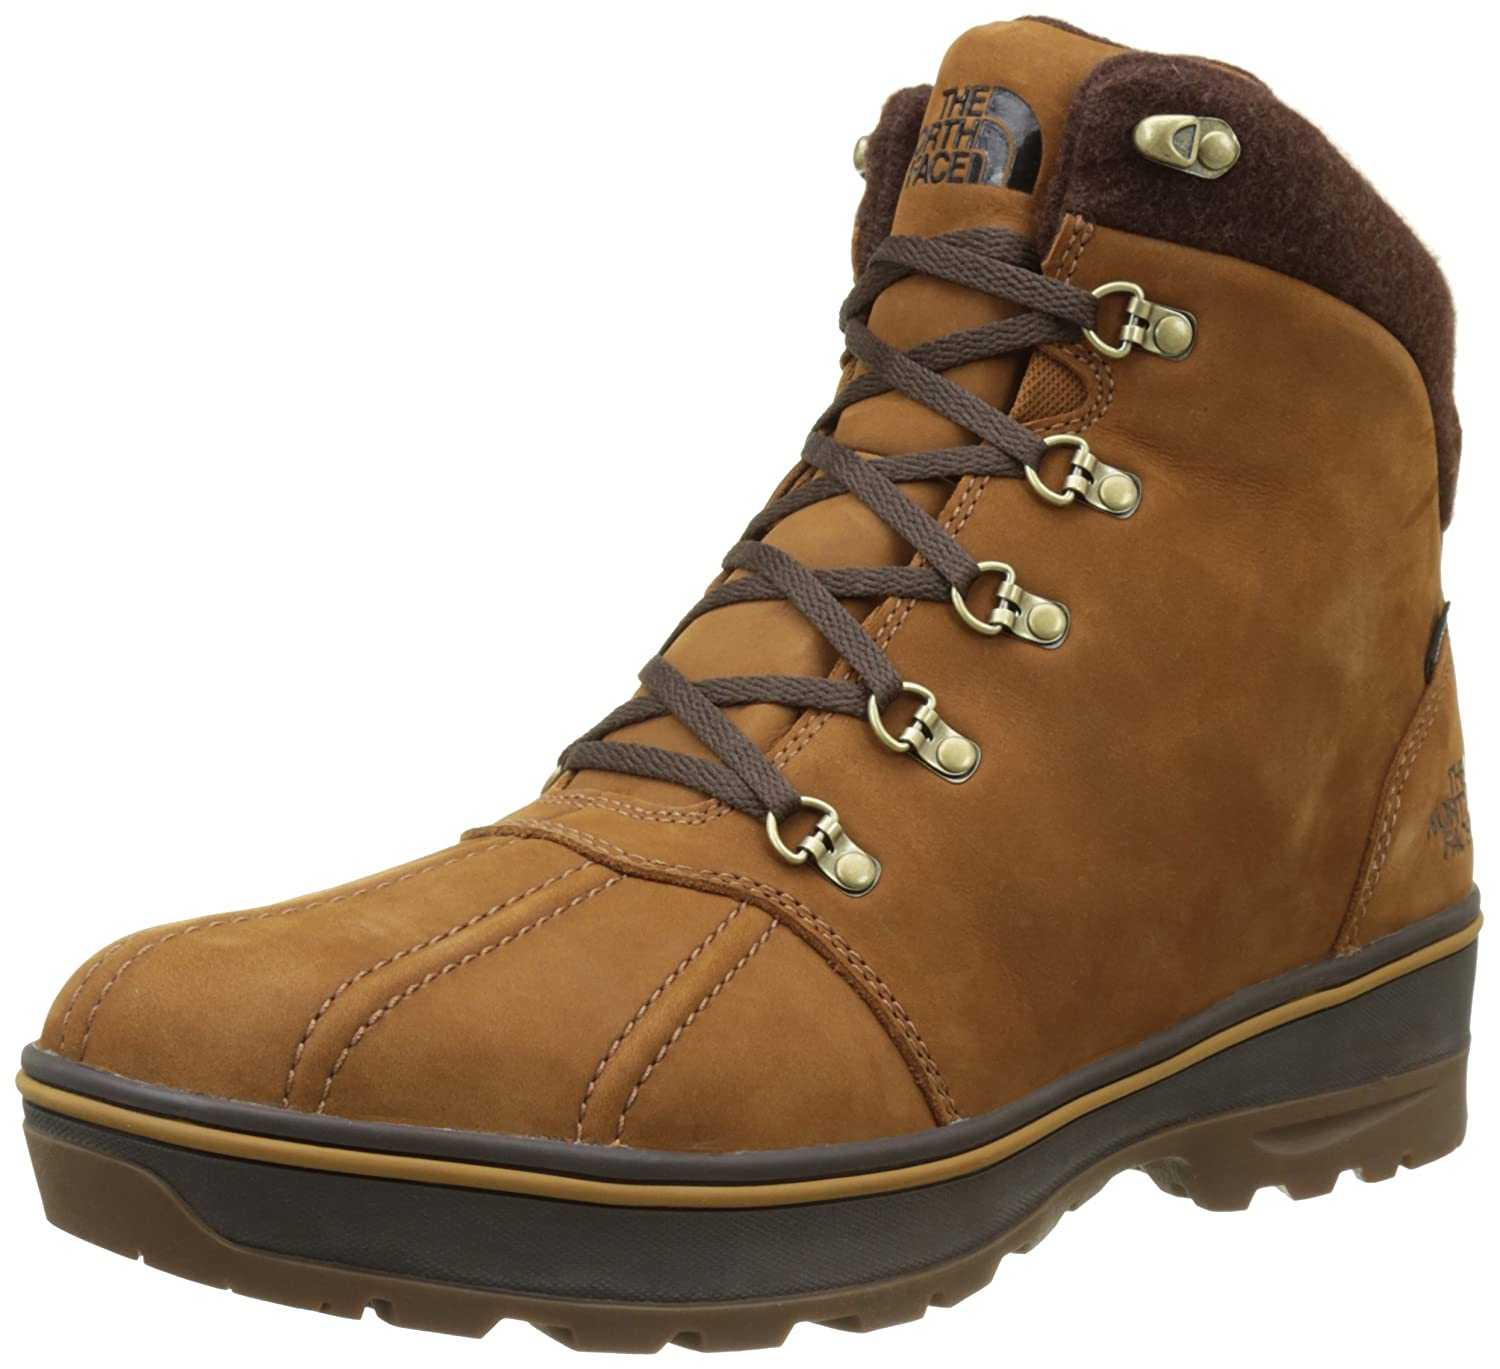 81a563ae52f The North Face Men's Ballard Duck Boot